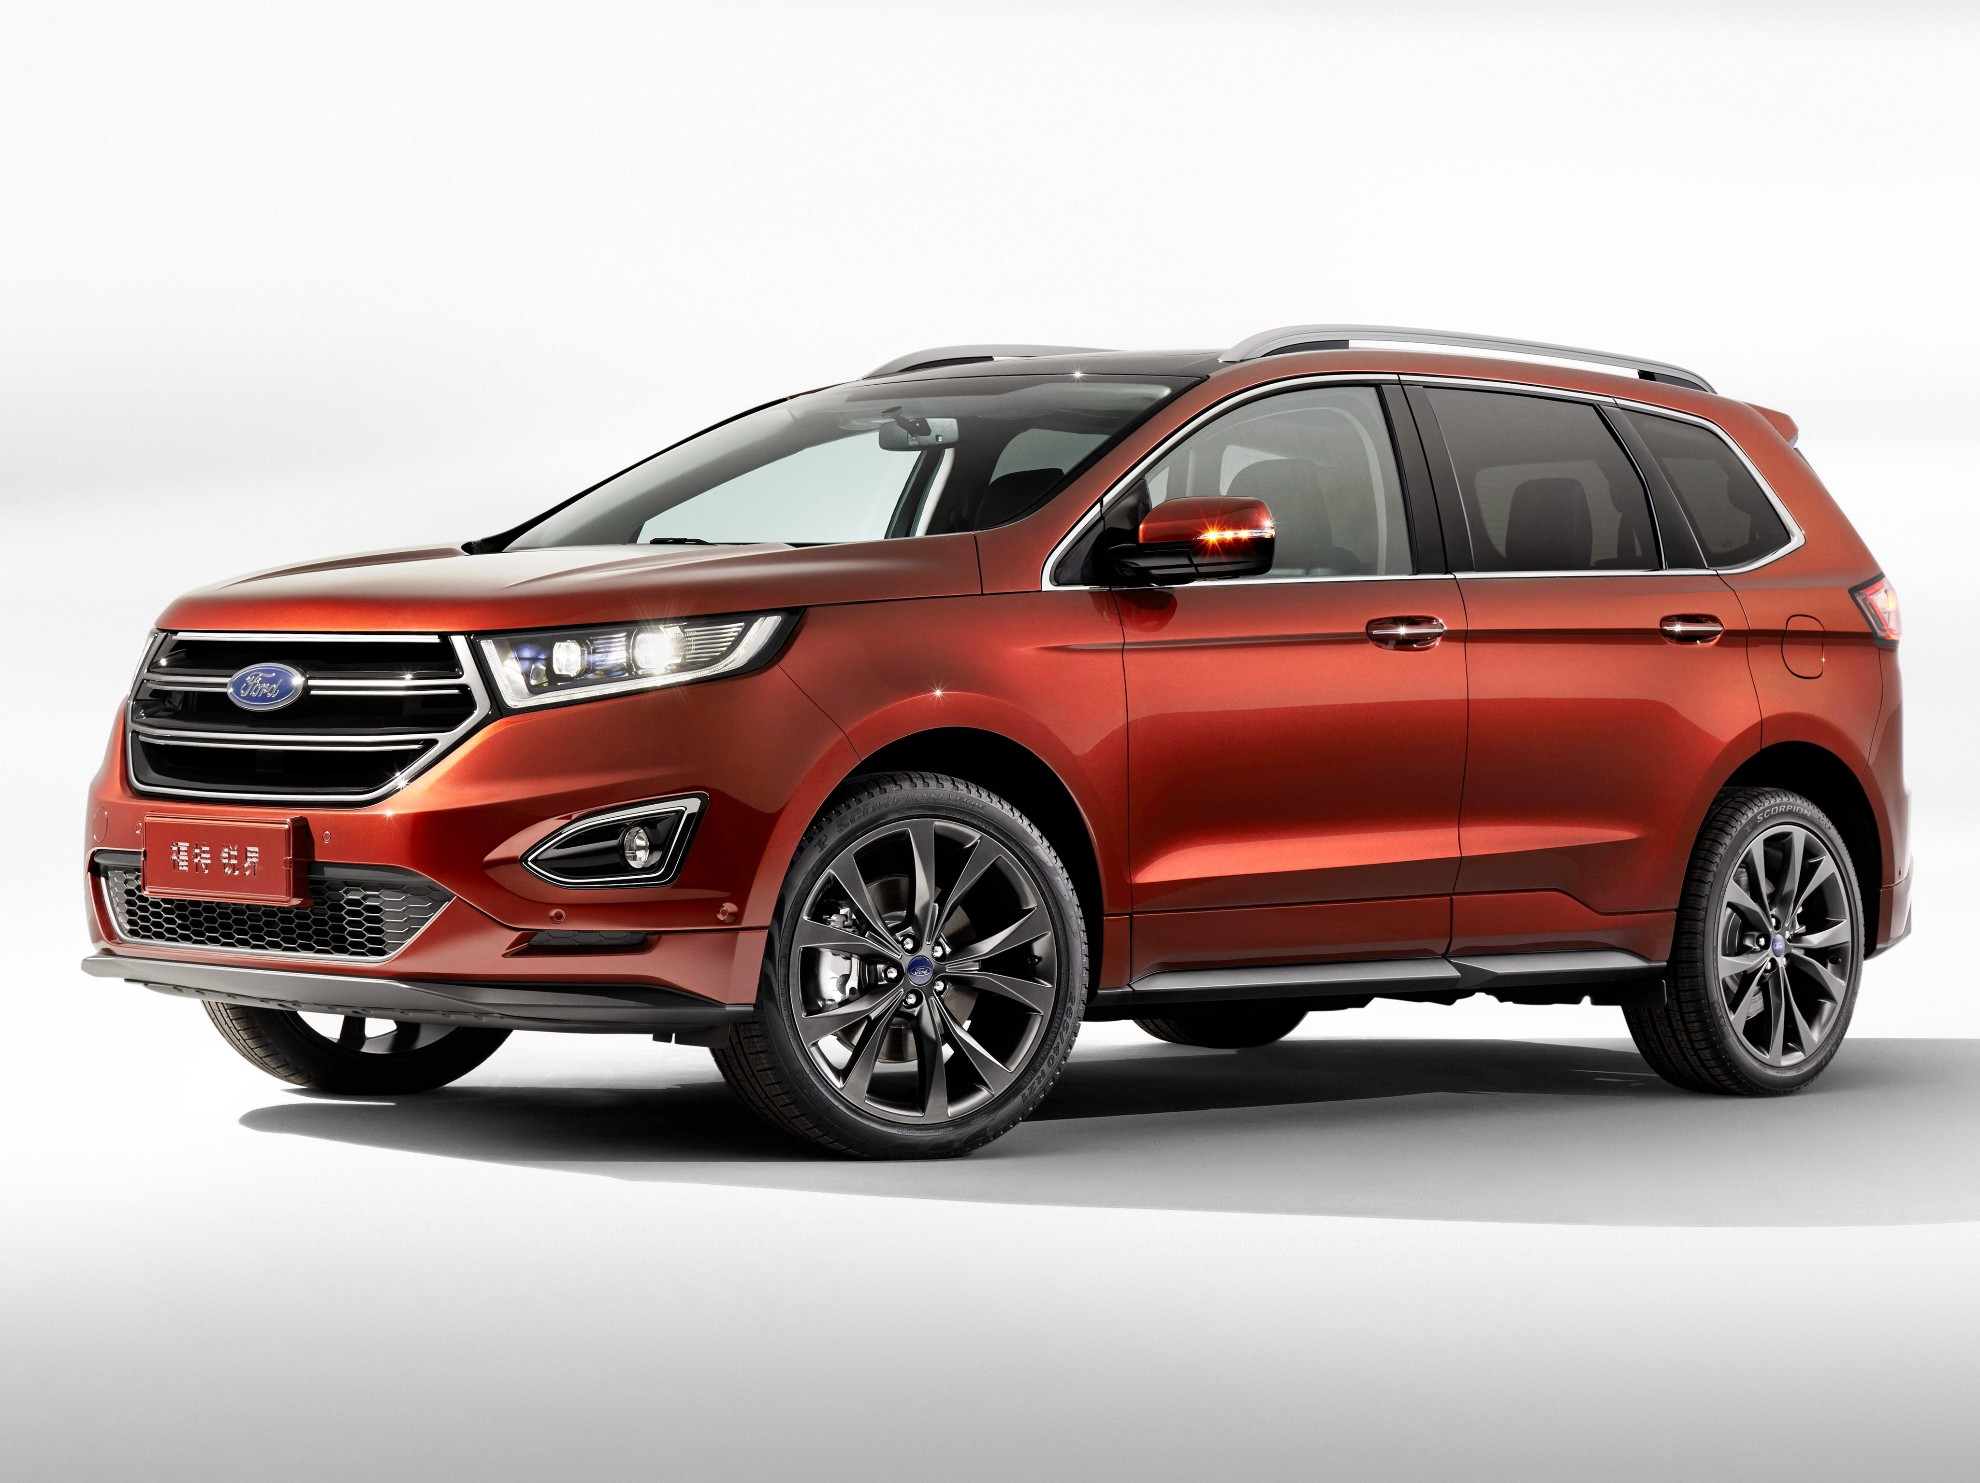 Ford Edge And Fusion Are Being Probed By Nhtsa For Power